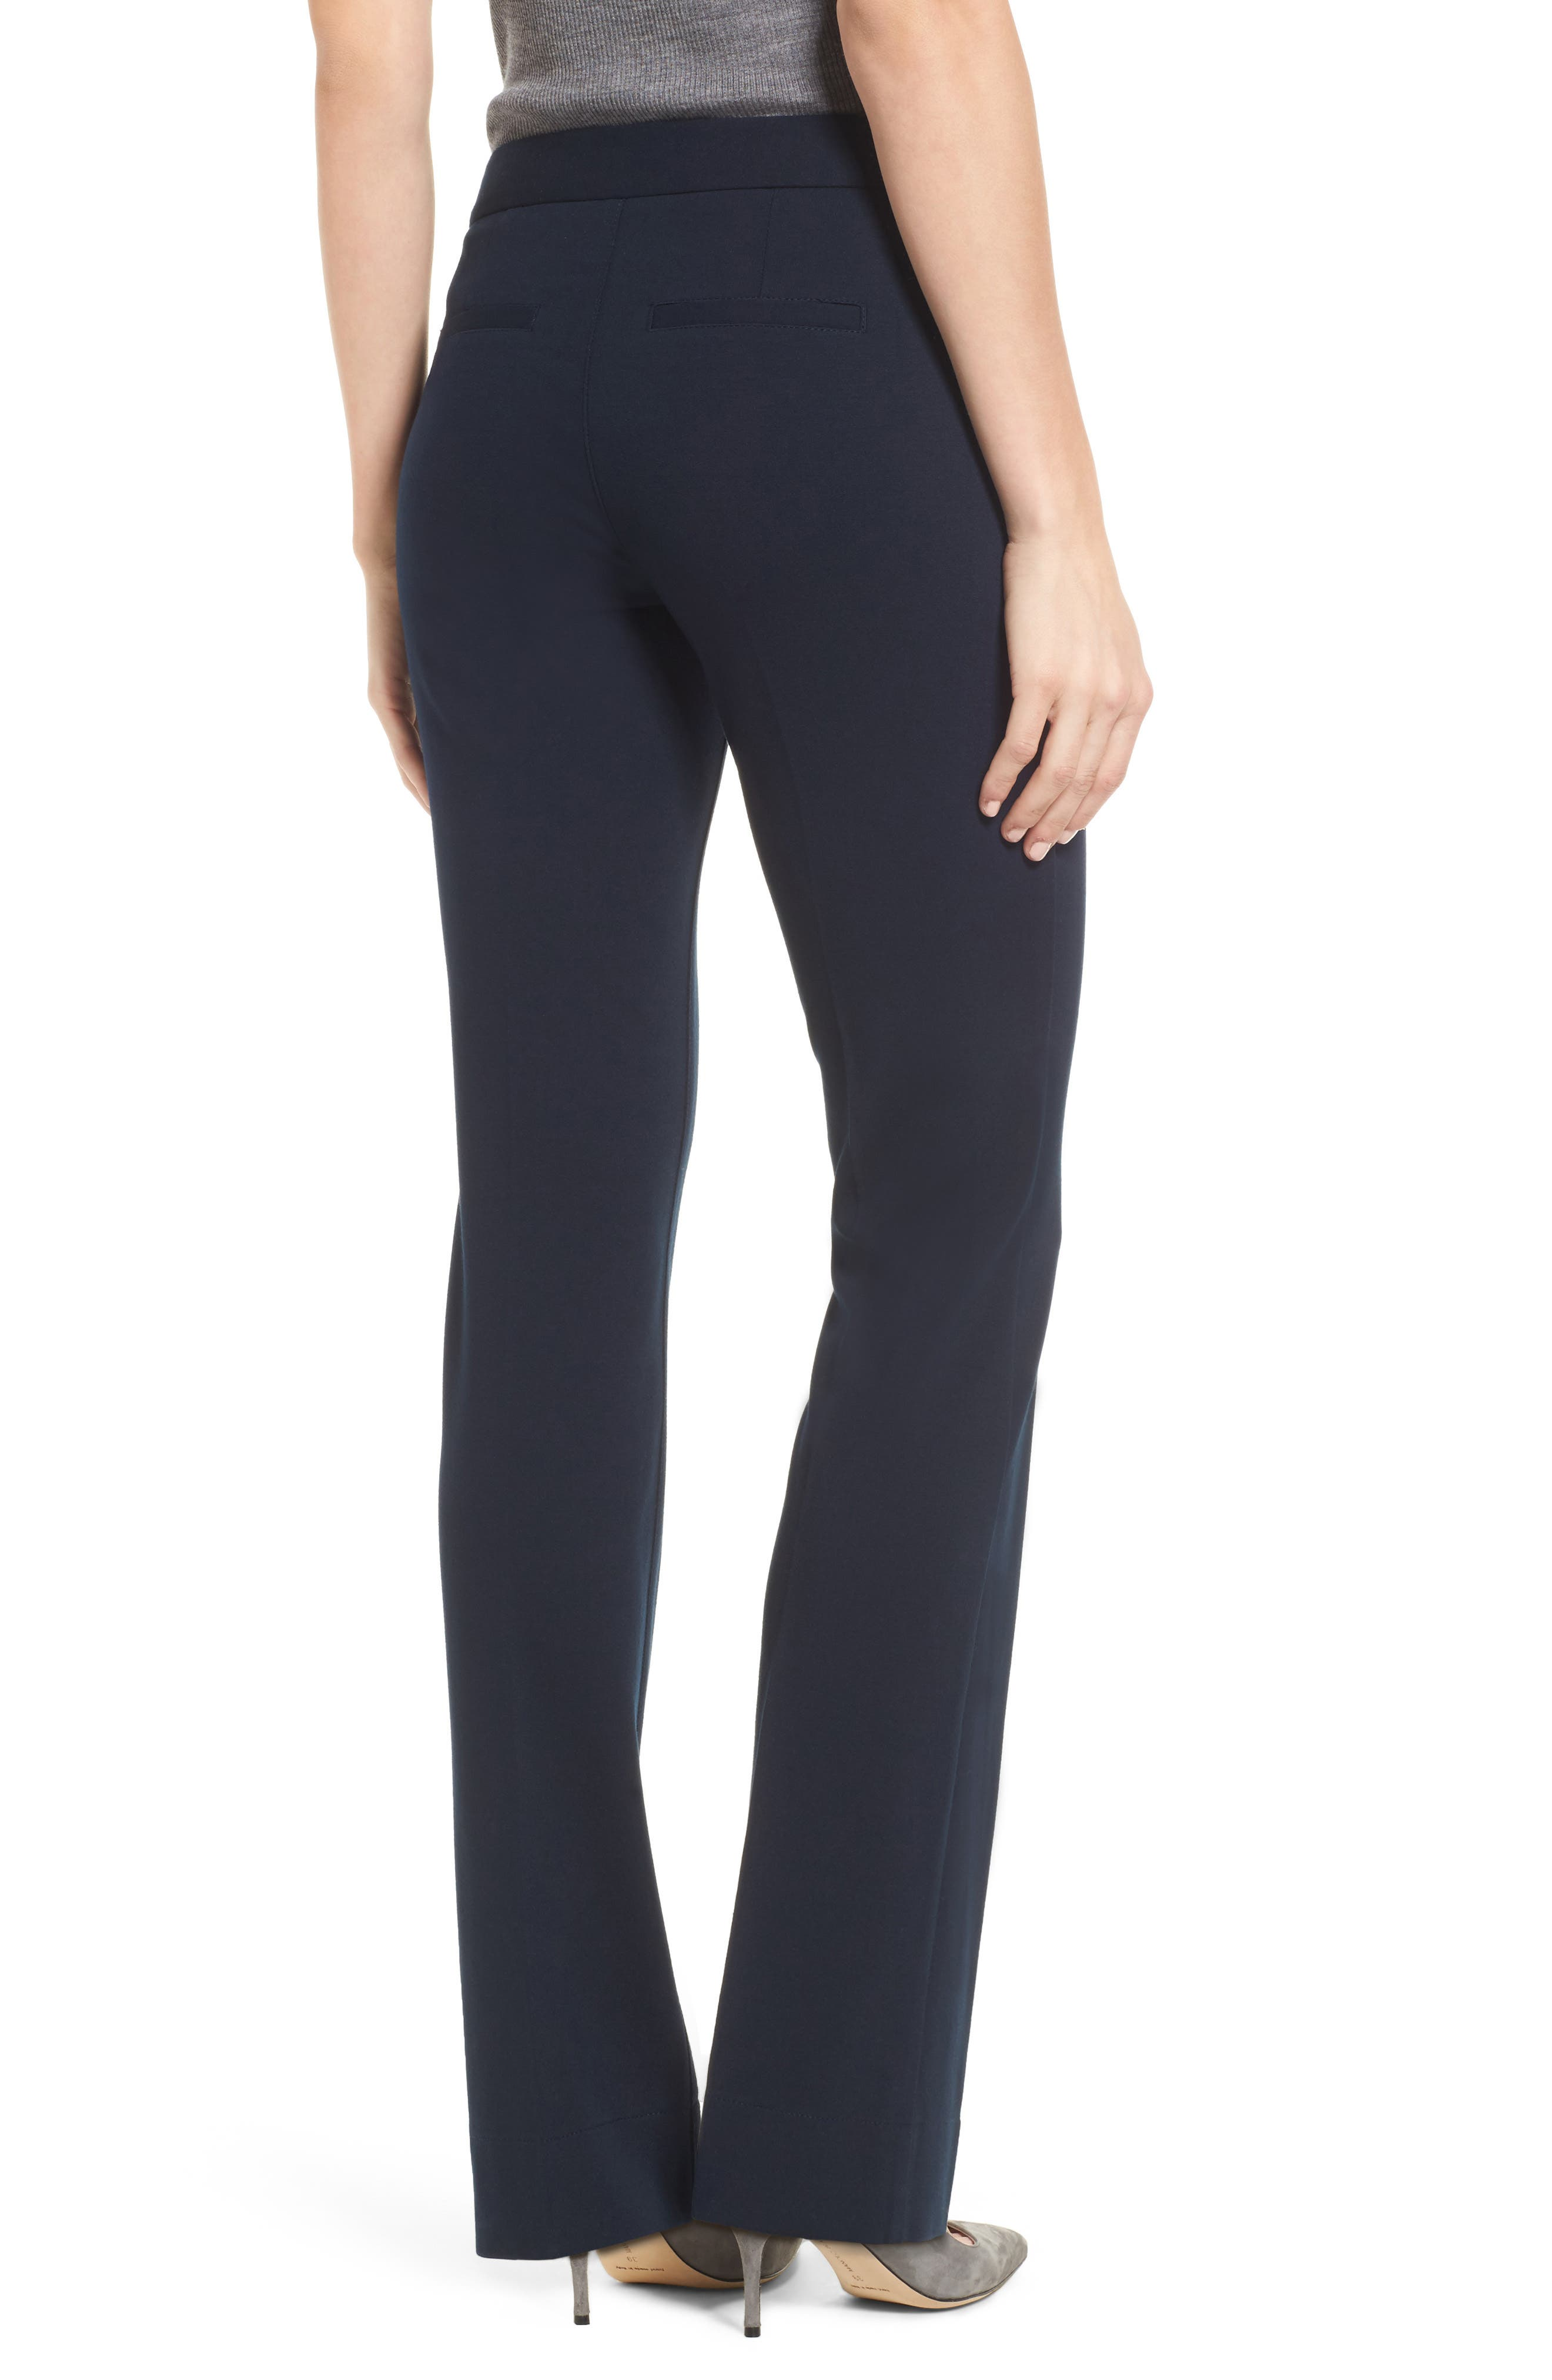 Alternate Image 2  - NYDJ Stretch Knit Trousers (Regular & Petite)